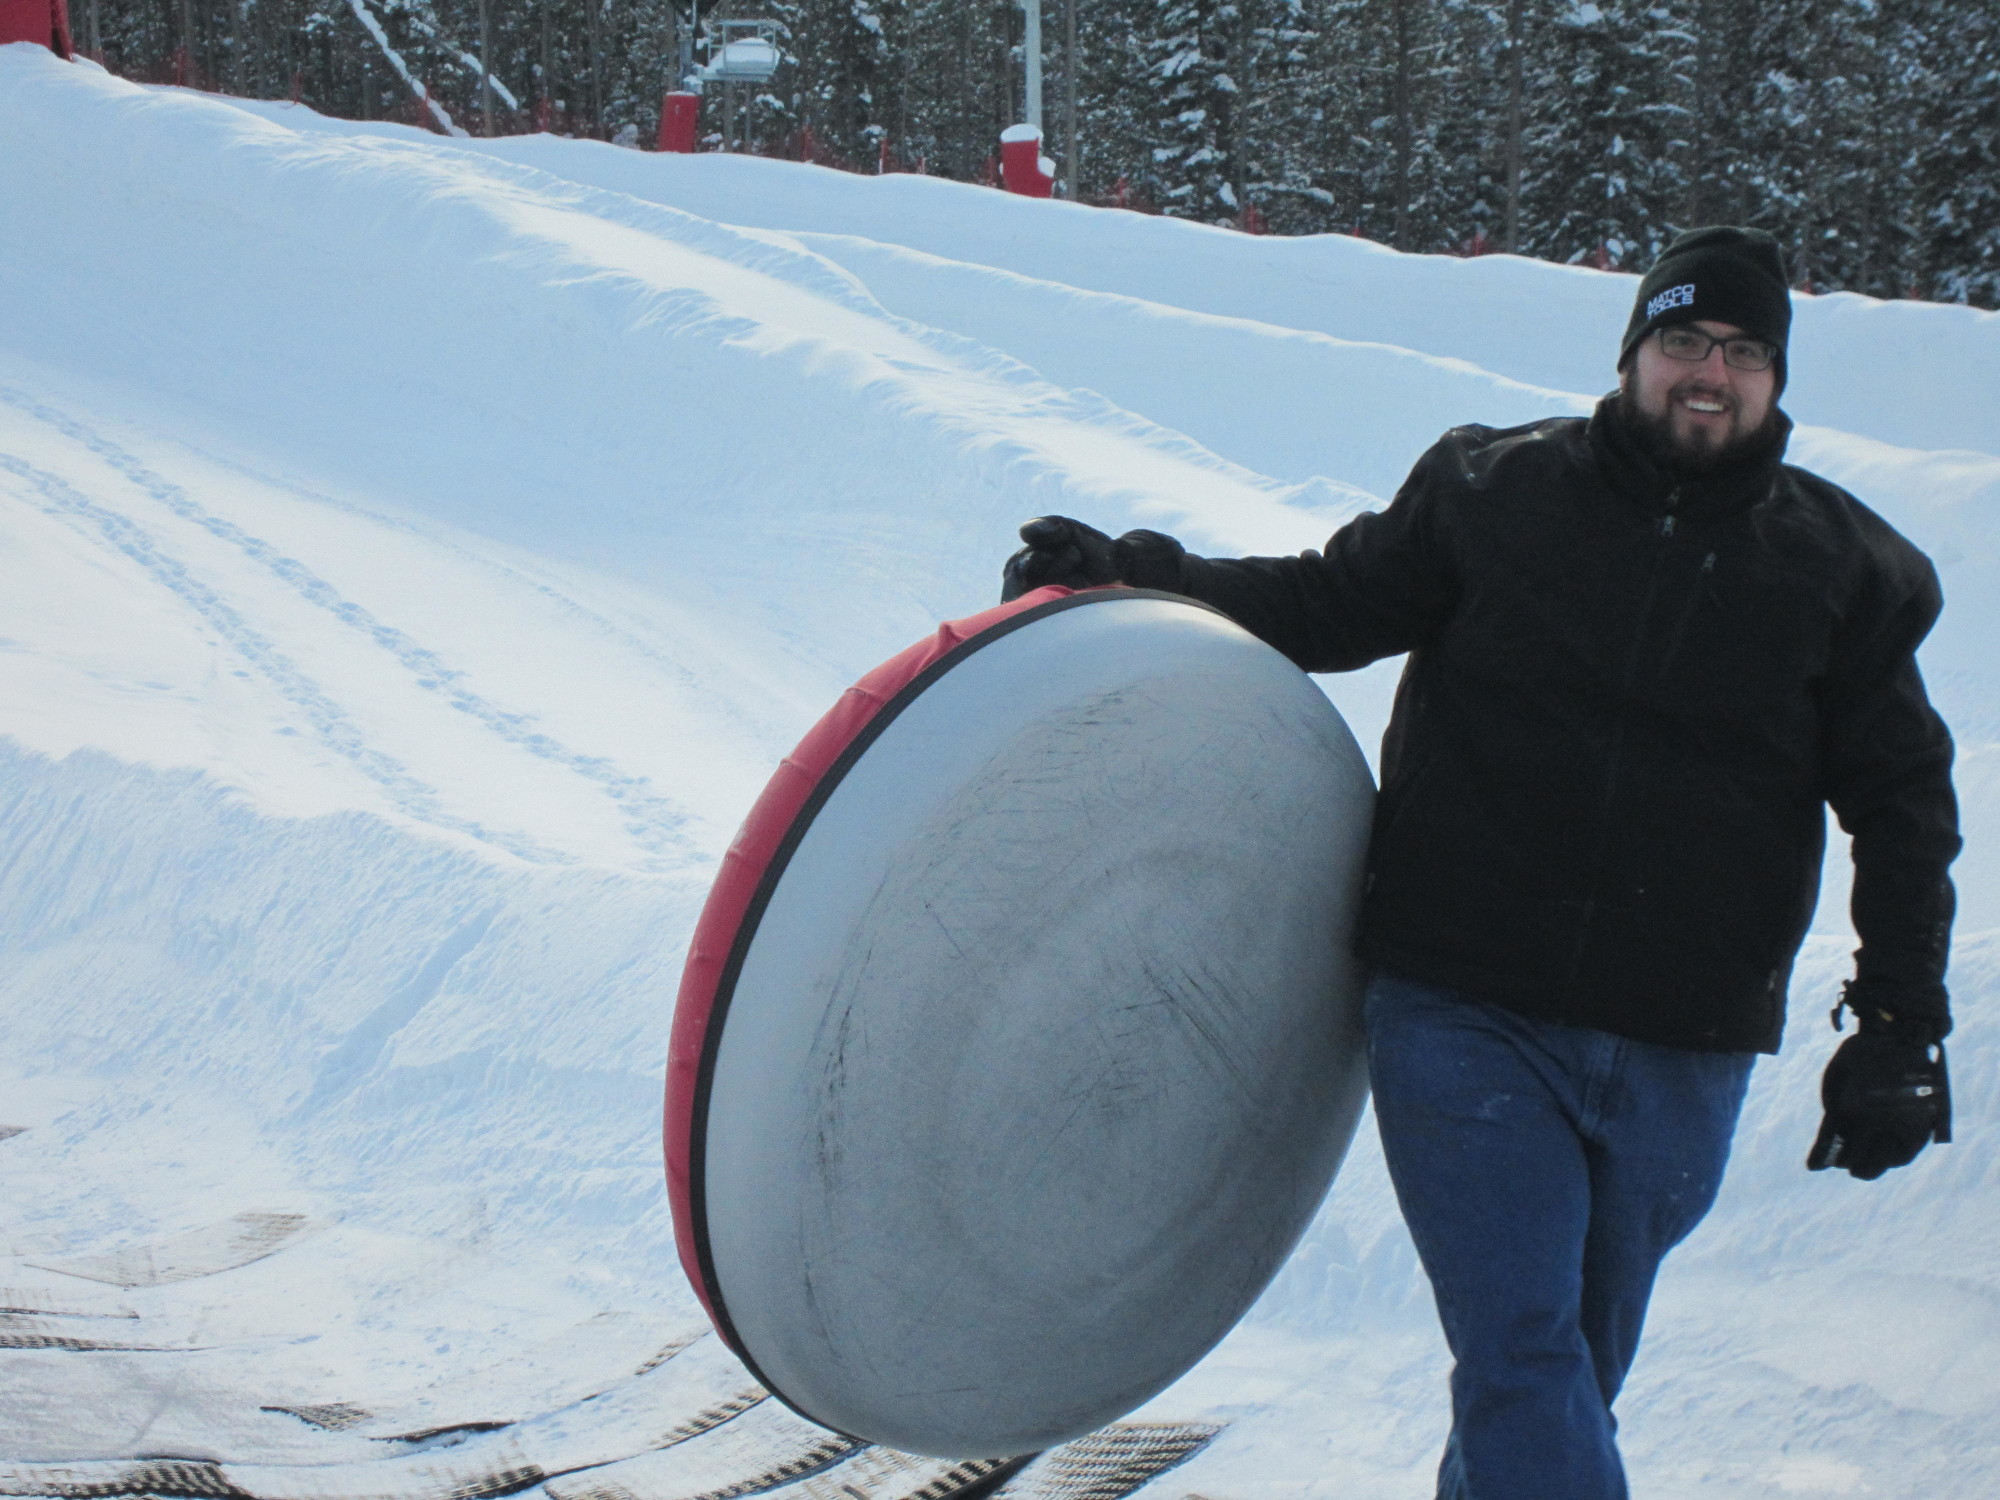 Me, lugging one of the inner tubes at the bottom of the lane. I don't care how old you are, you're never too old to go snow tubing.